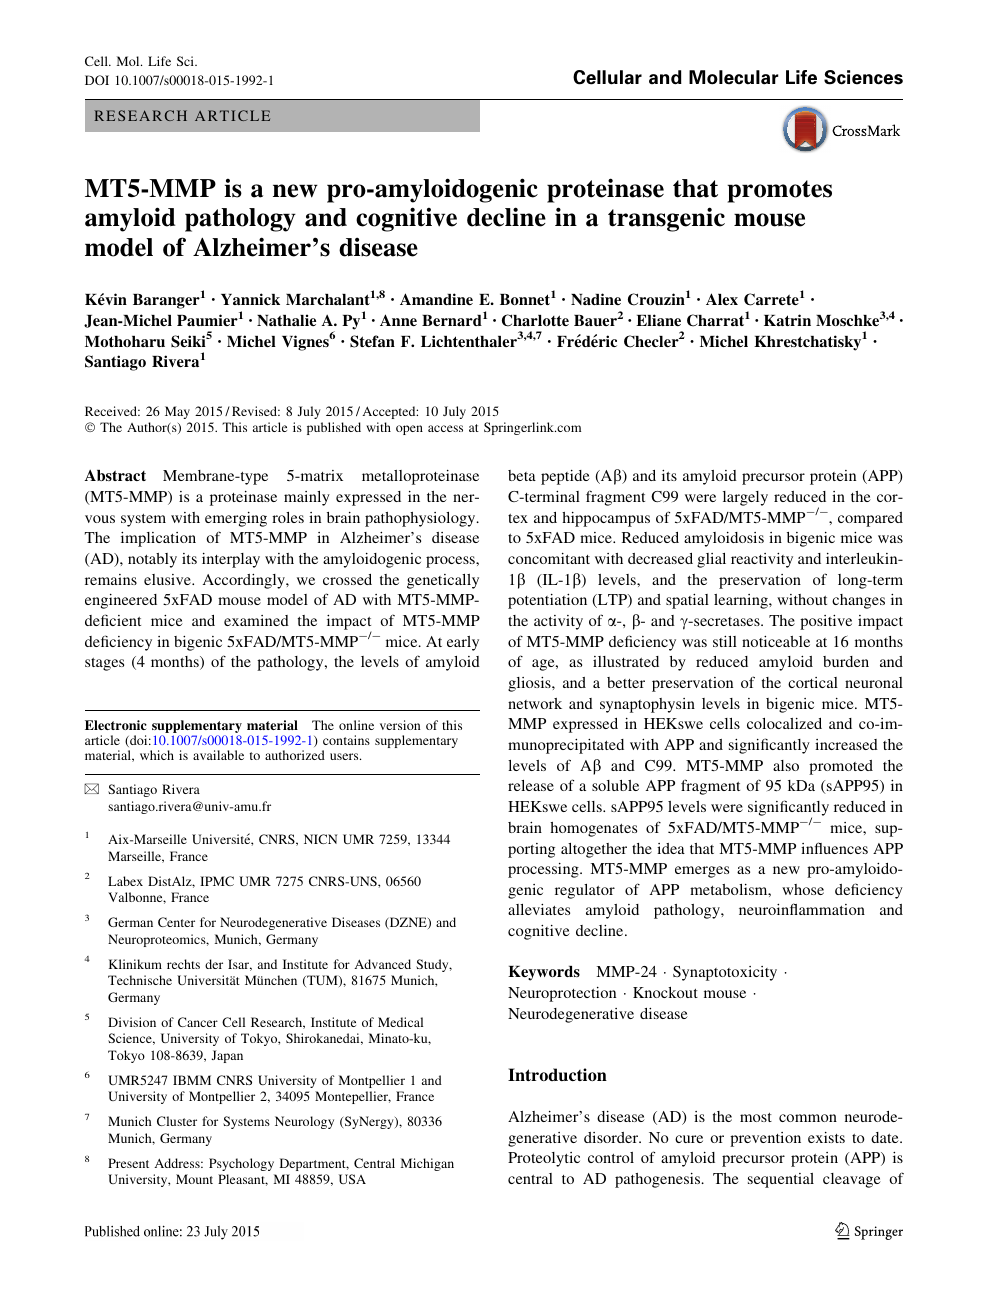 MT5-MMP is a new pro-amyloidogenic proteinase that promotes